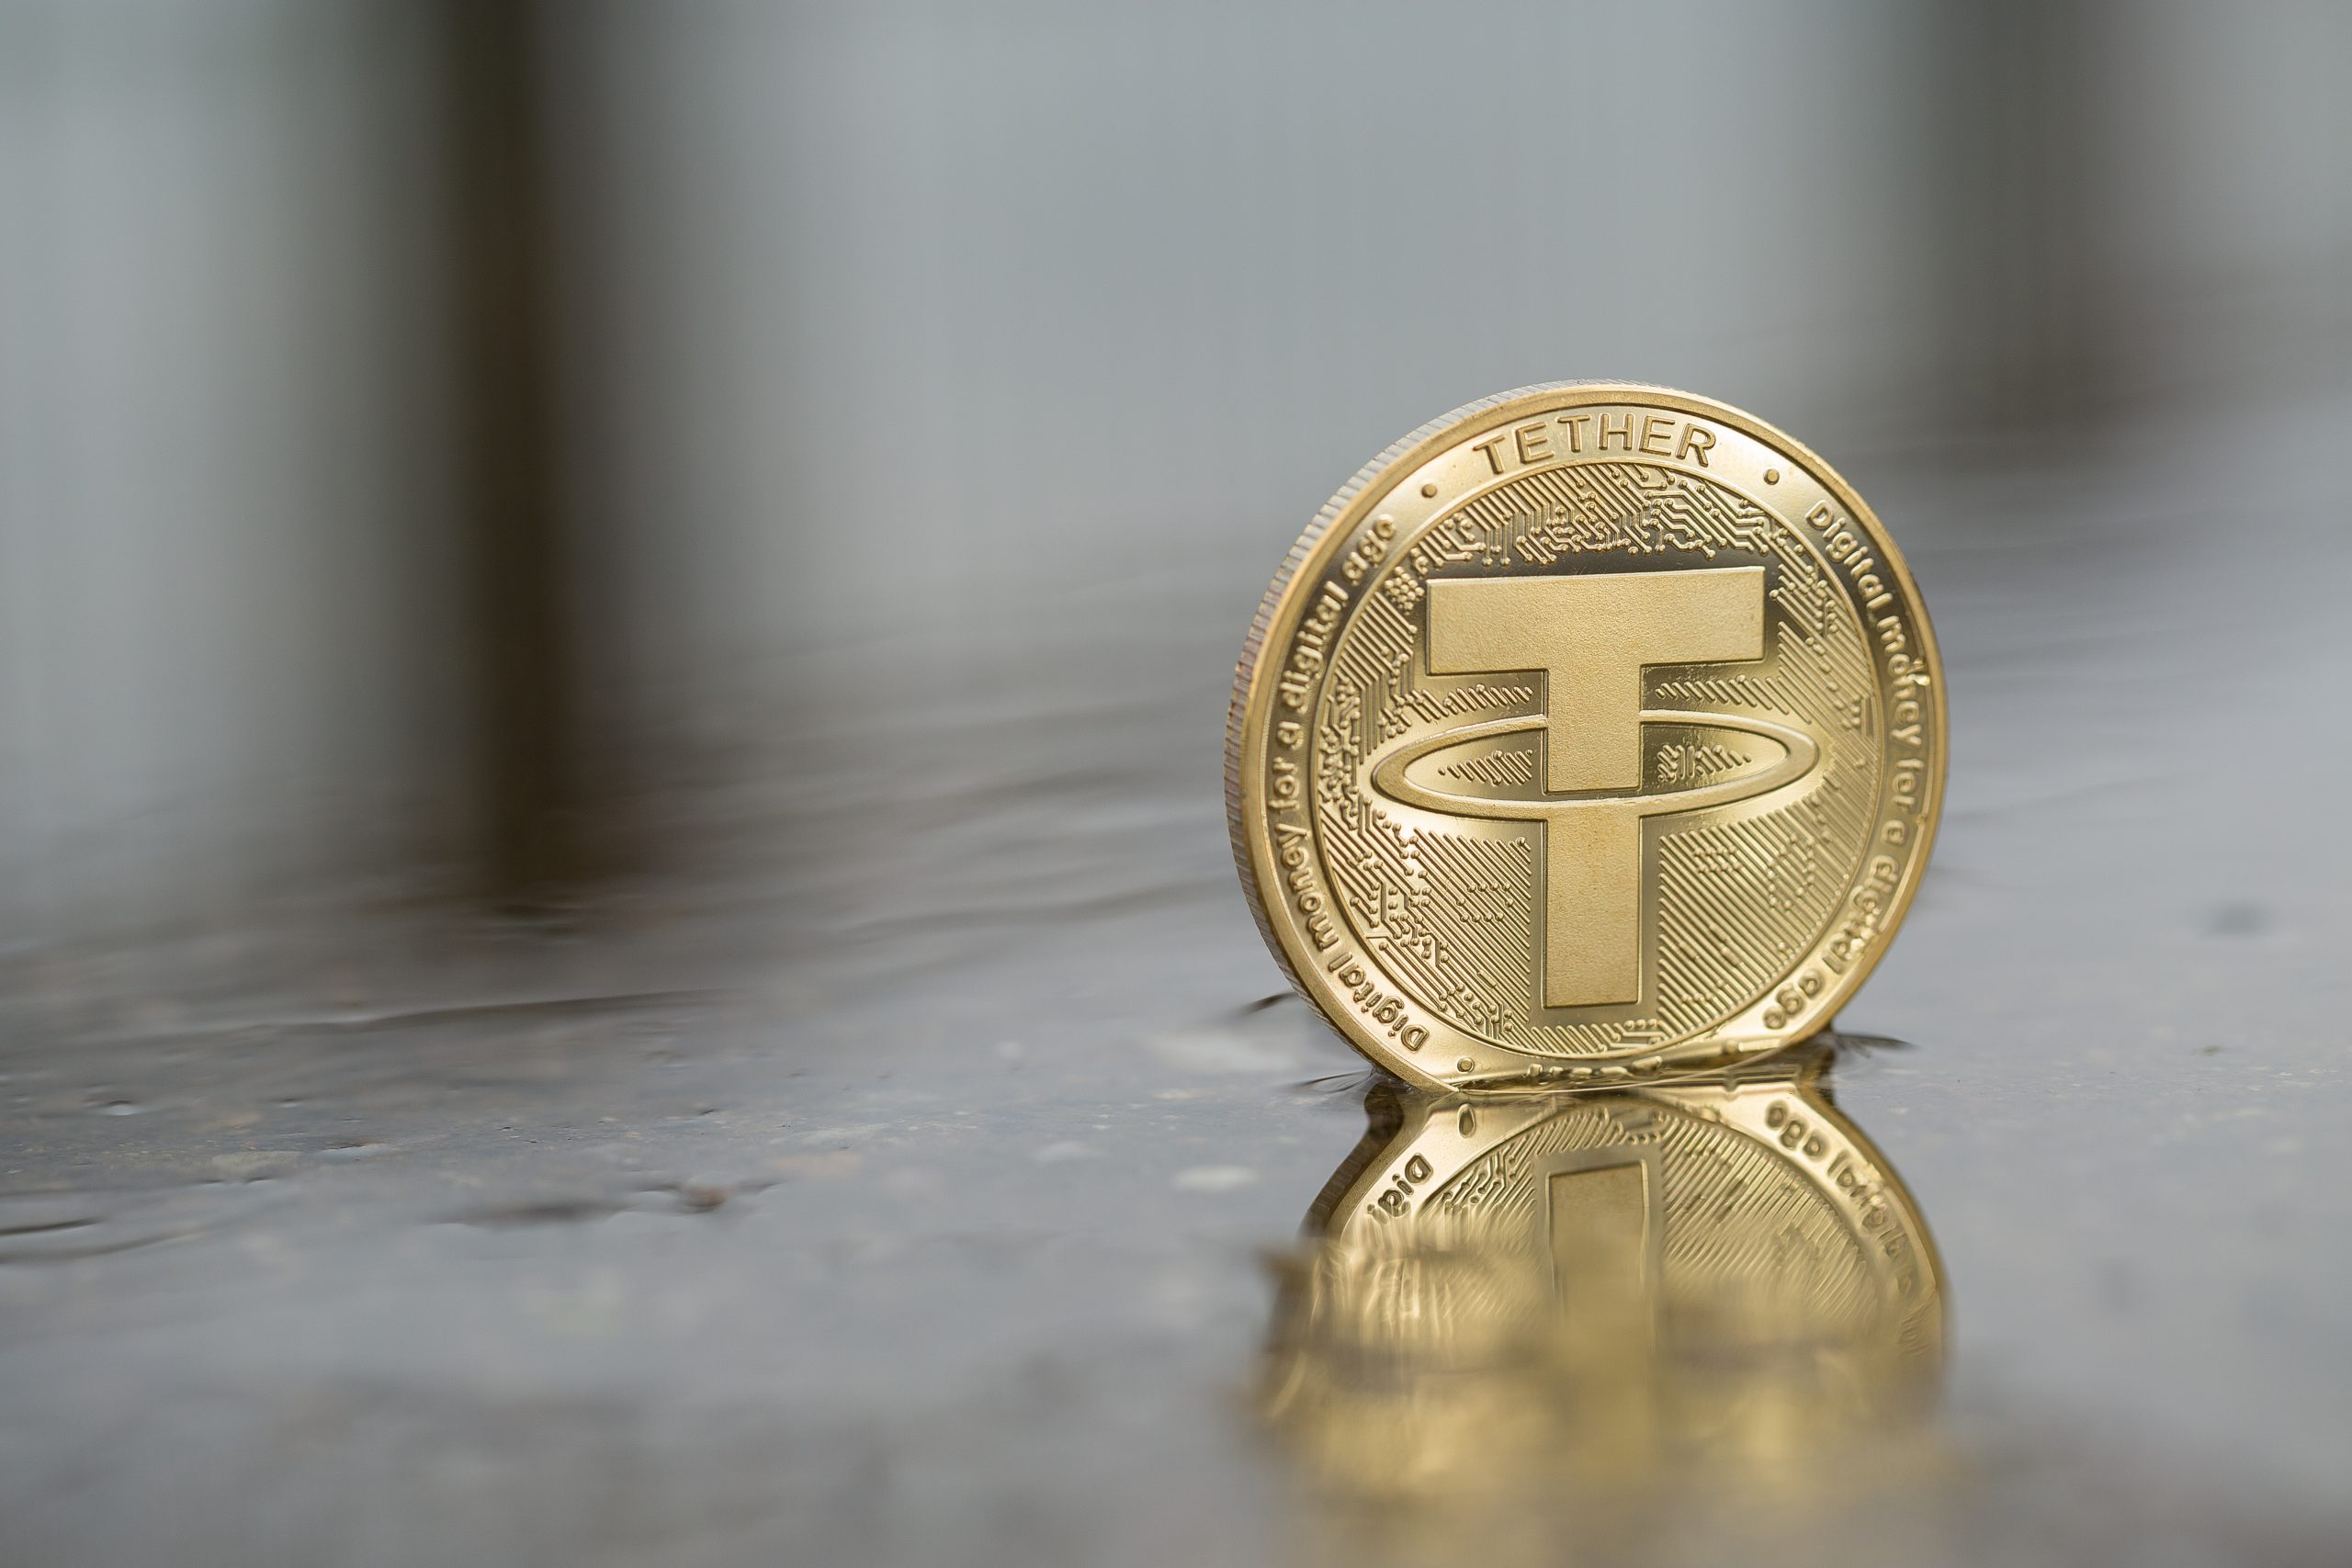 Is Tether Correct a Rip-off to Enrich Bitcoin Investors?